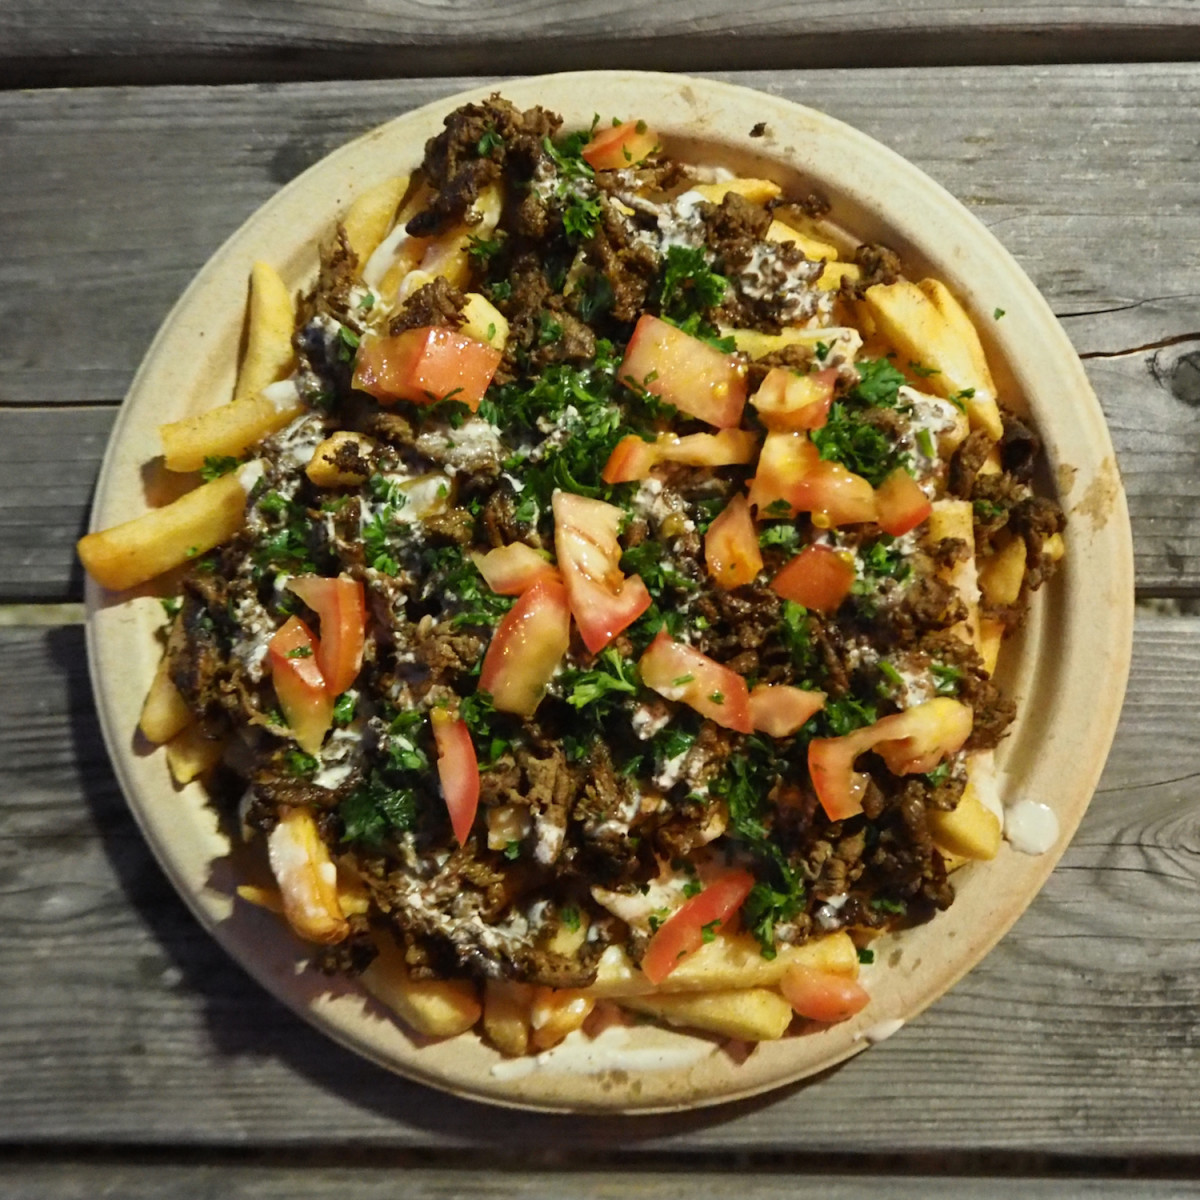 Beirut shawarma fries